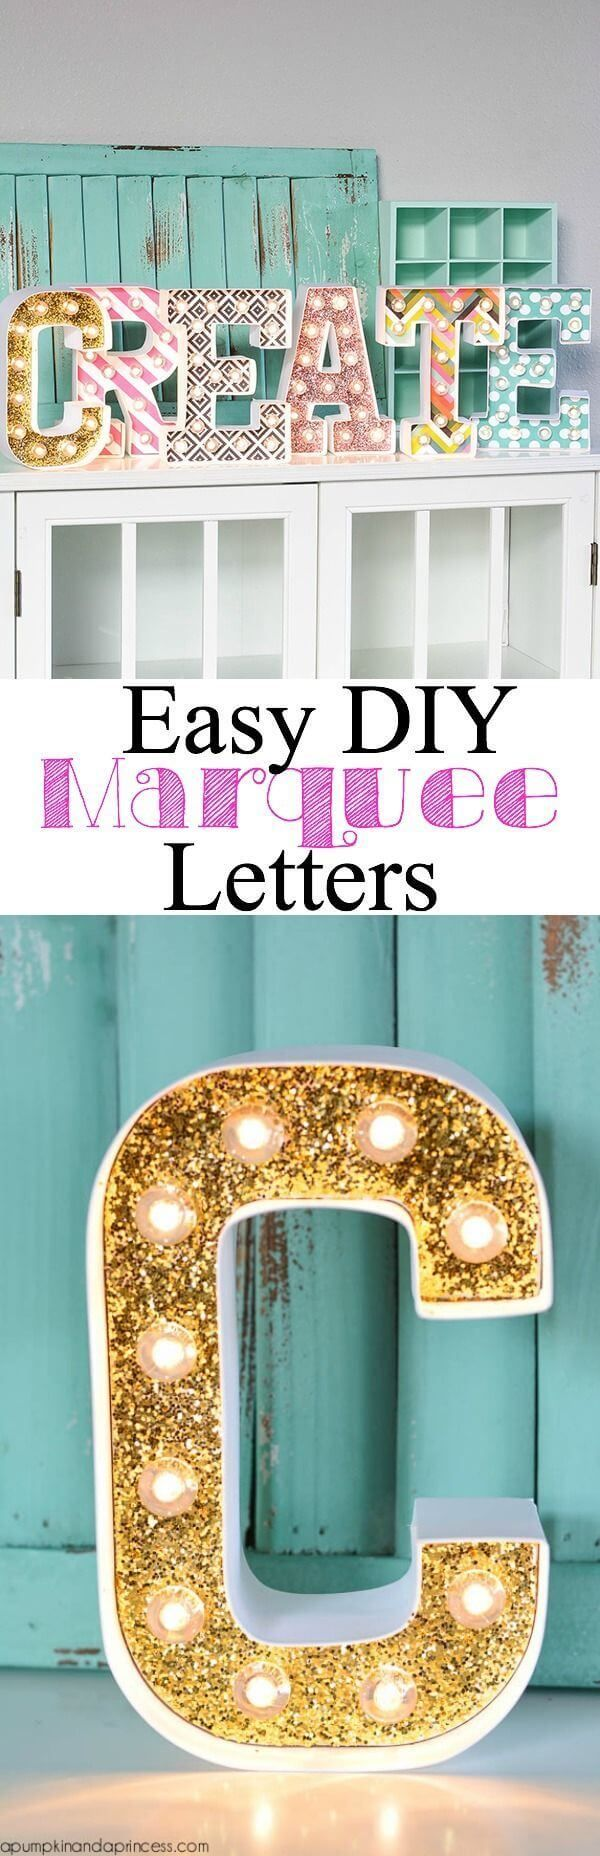 Patterned Marquee Letters Brighten the Room